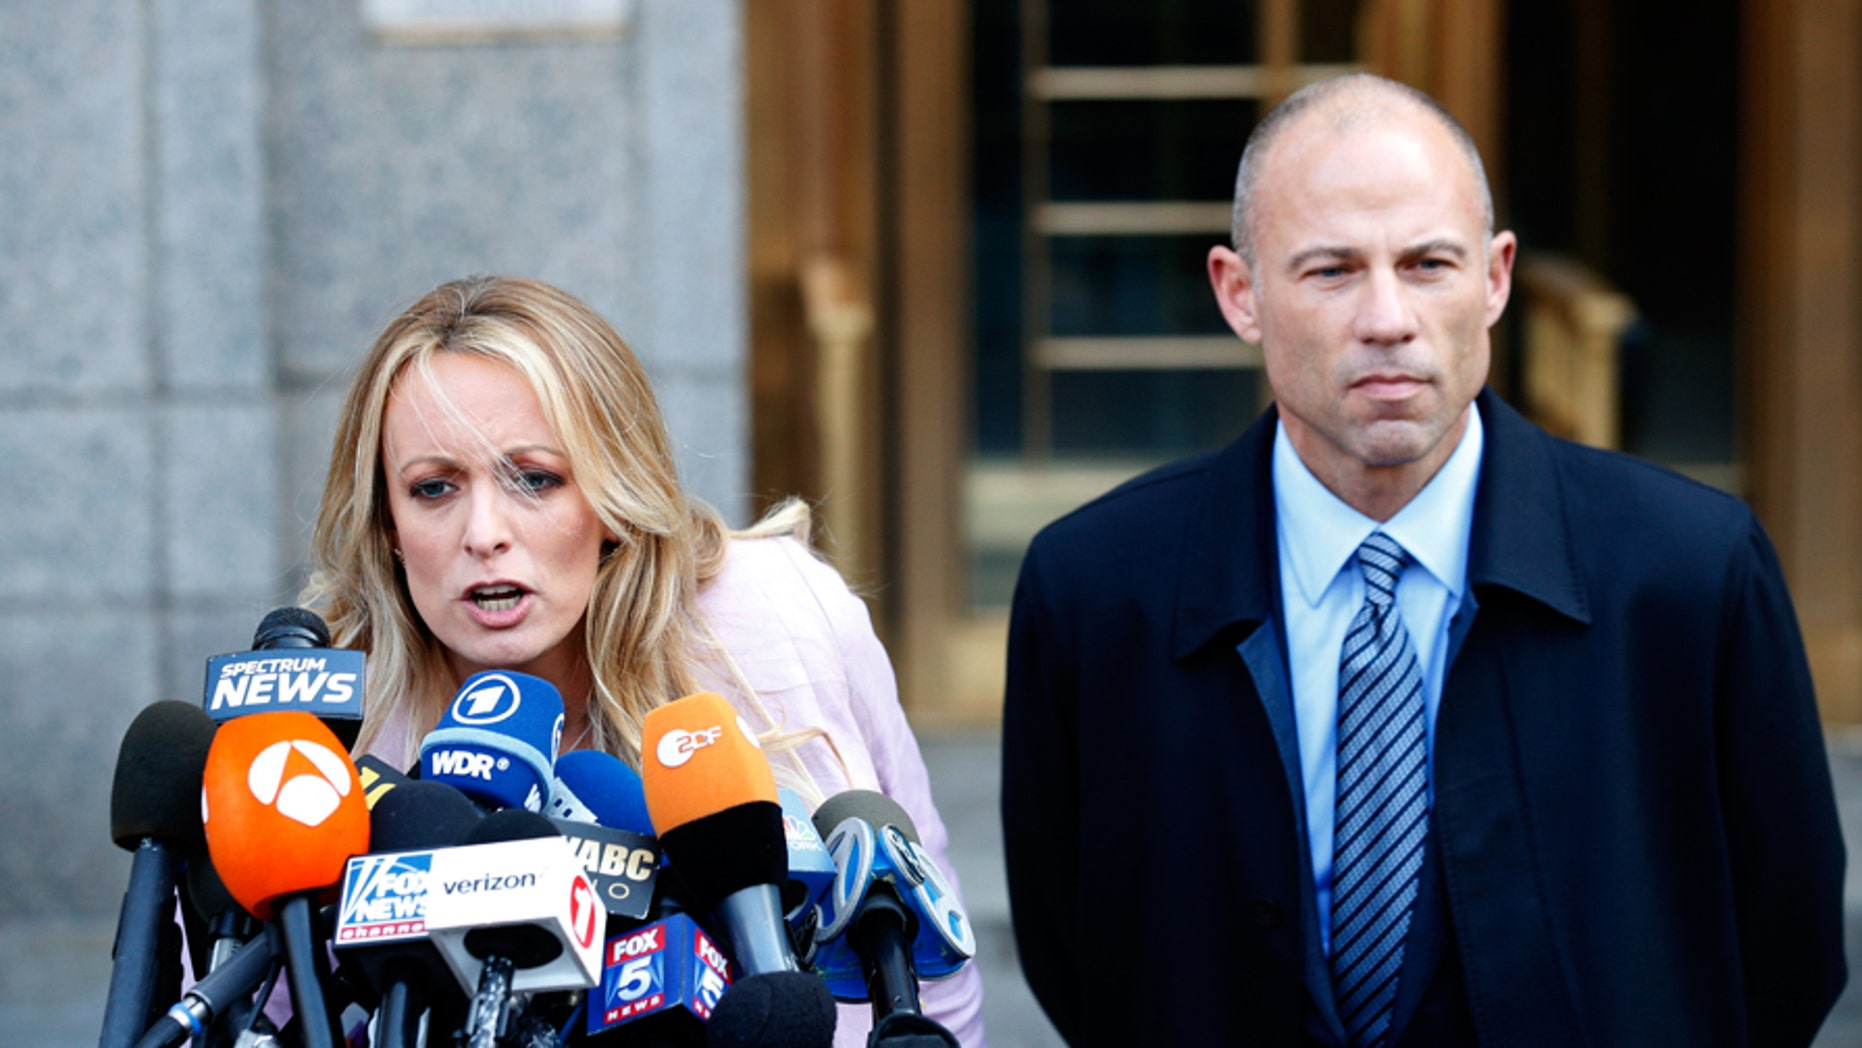 Adult film star Stormy Daniels, left, and attorney Michael Avenatti